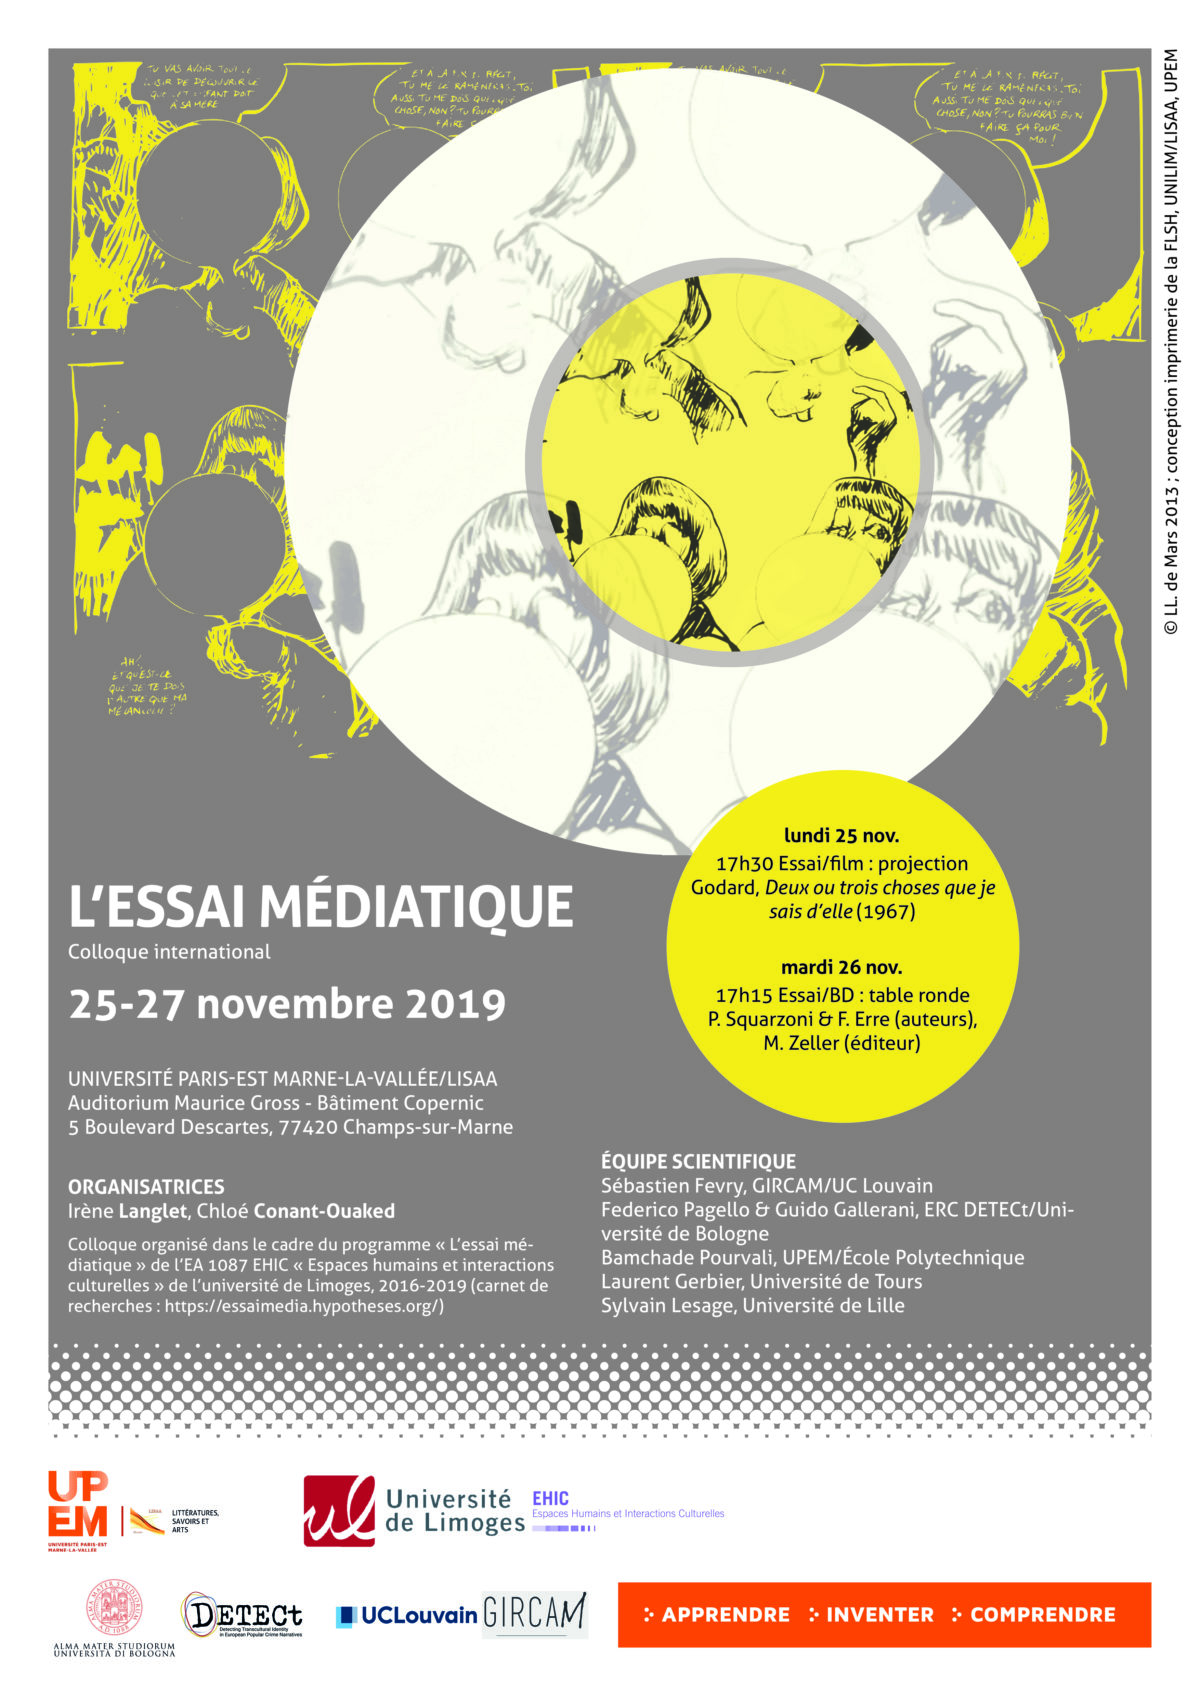 Colloque: programme